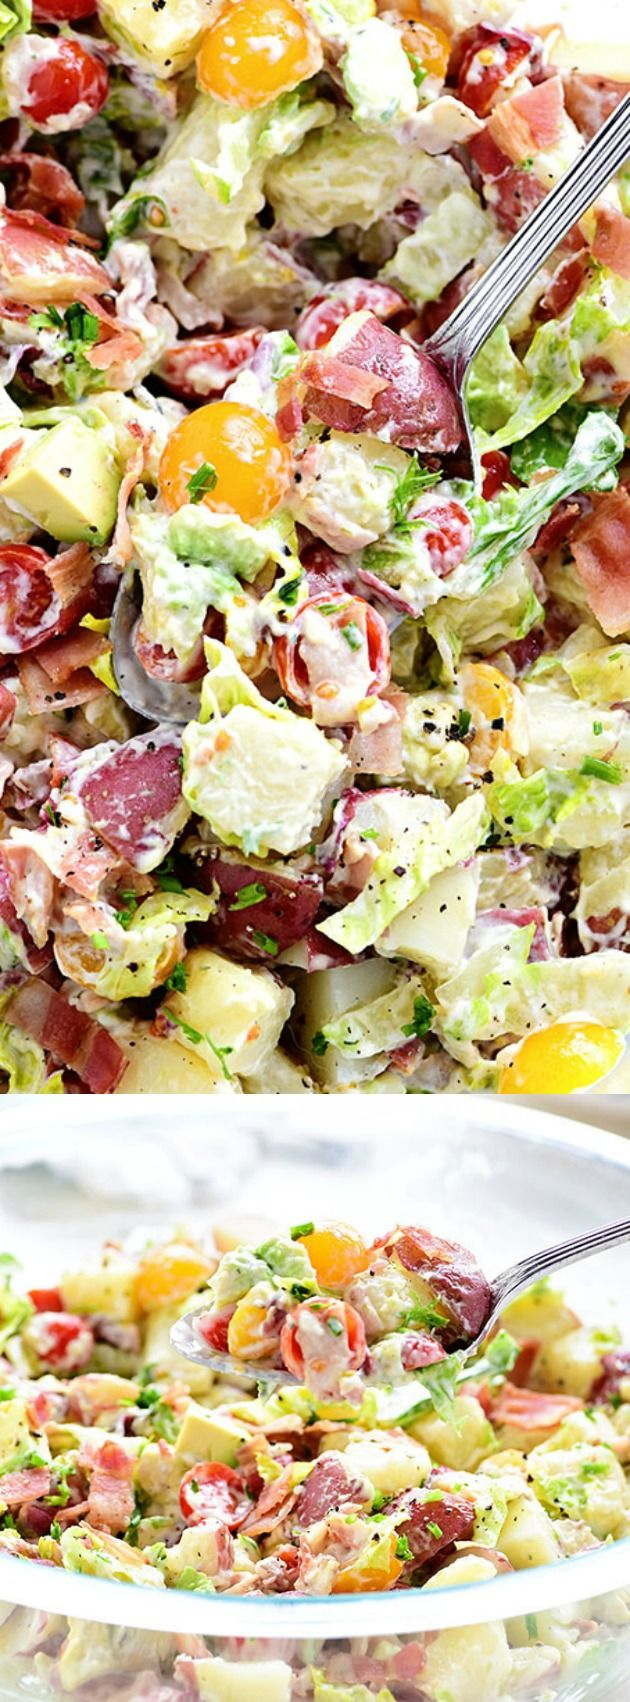 This BLT Red Potato Salad with Avocado from Tidy Mom has an amazing and creamy avocado ranch dressing along with crispy bacon, crisp lettuce, and fresh tomato! It's a simple and crowd pleasing dish for any size gathering!